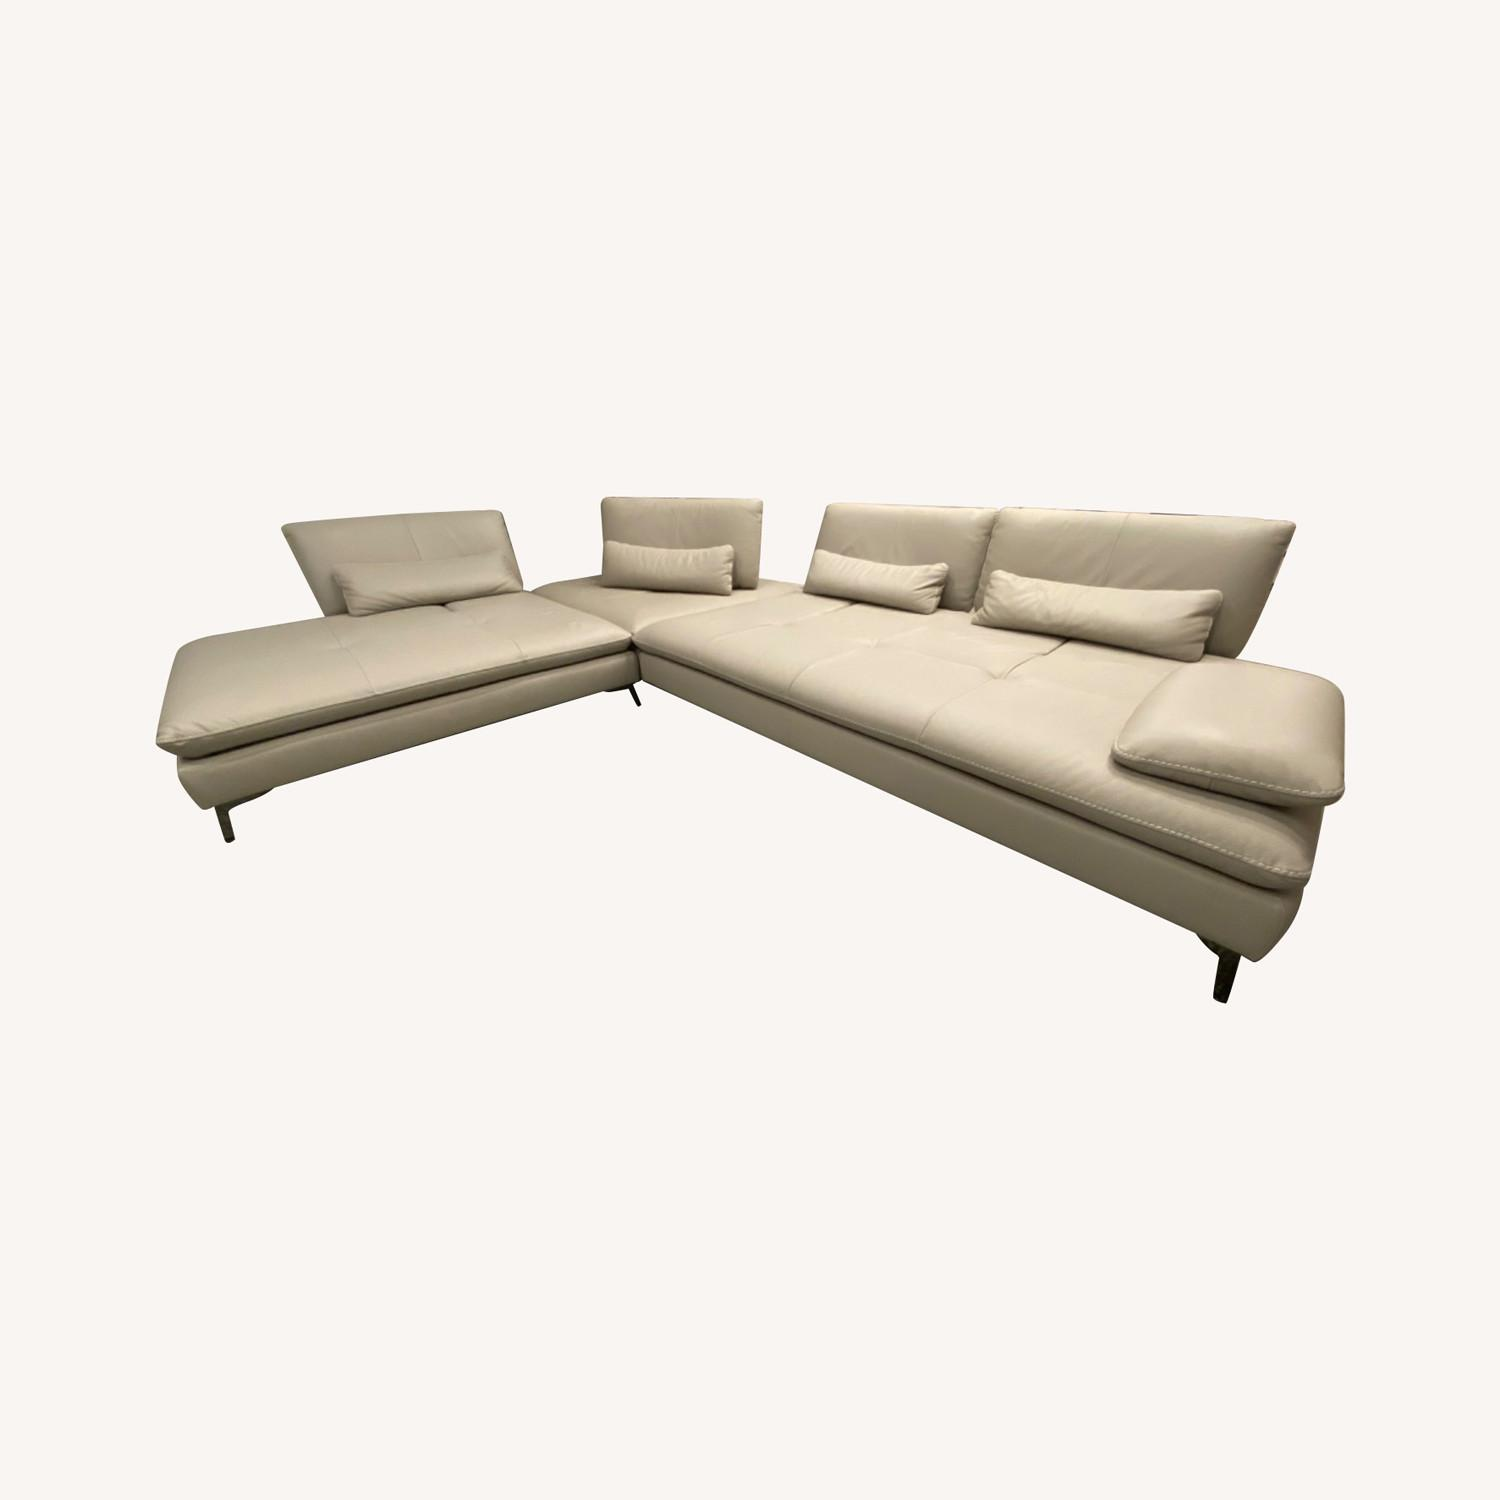 Roche Bobois Leather Sectional - image-0